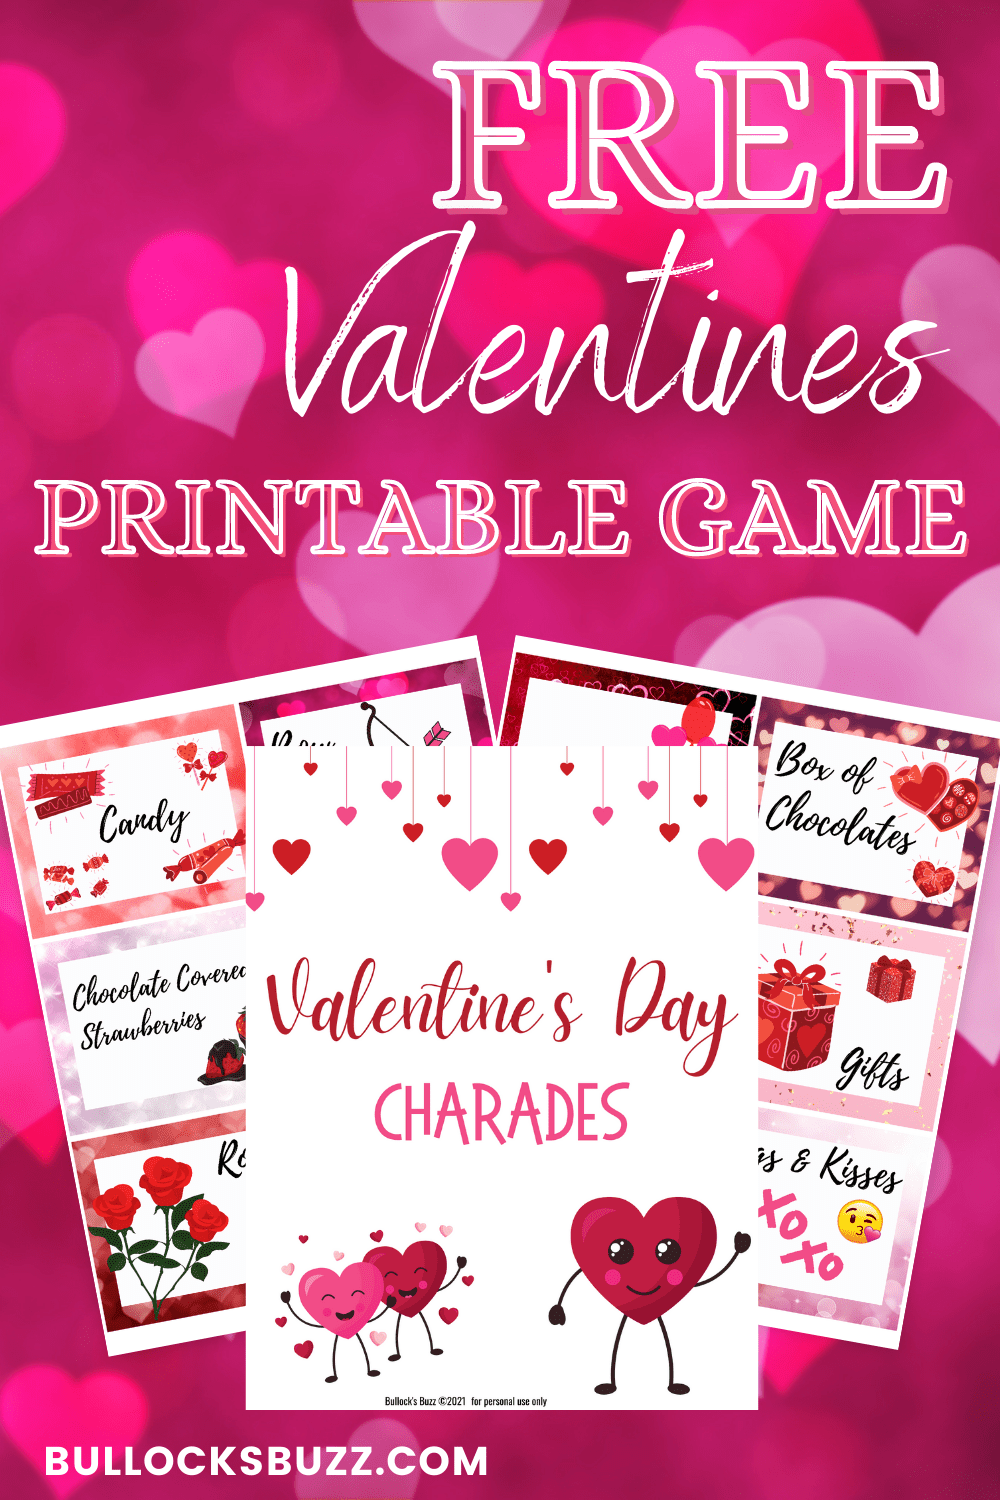 Valentine's Charades is a fun and easy game to play that's perfect for people of any age. All you need to play this Valentine's Charades printable game are these ready-made clues, your imagination, and the willingness to laugh and have some fun!